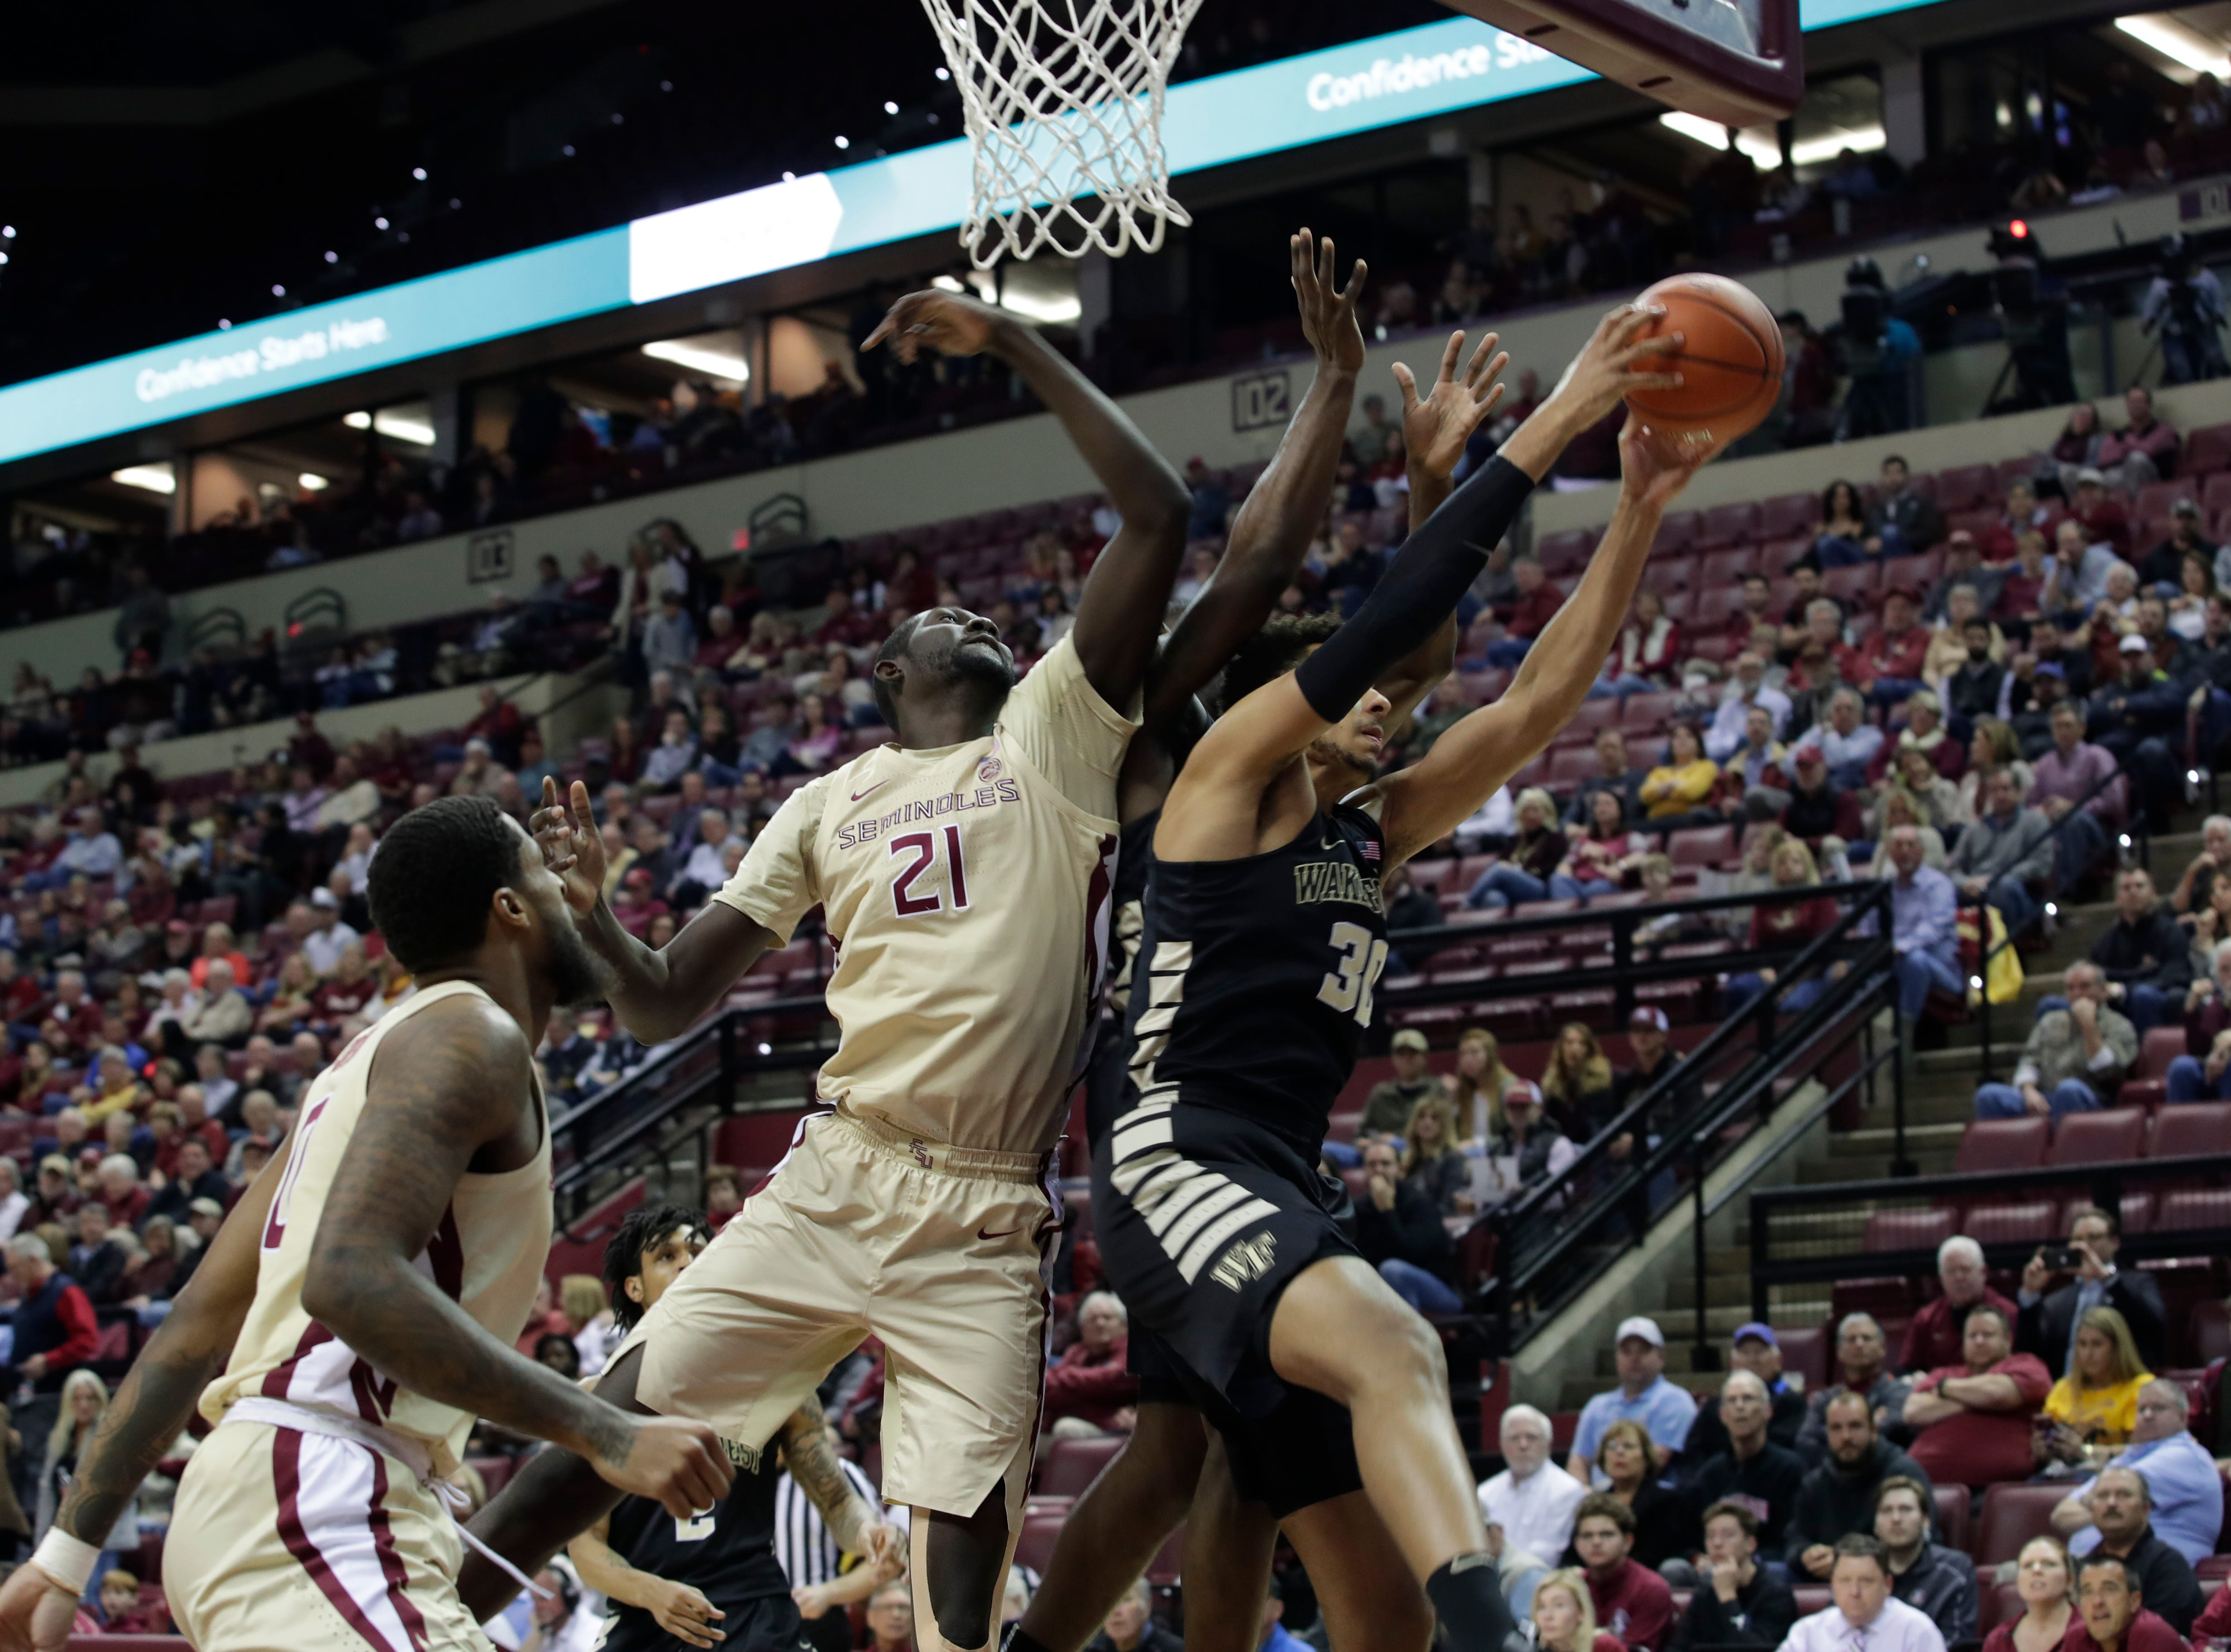 A rebound slips through the hands of Florida State Seminoles center Christ Koumadje (21) during a game between FSU and Wake Forest at the Donald L. Tucker Civic Center Wednesday, Feb. 13, 2019.